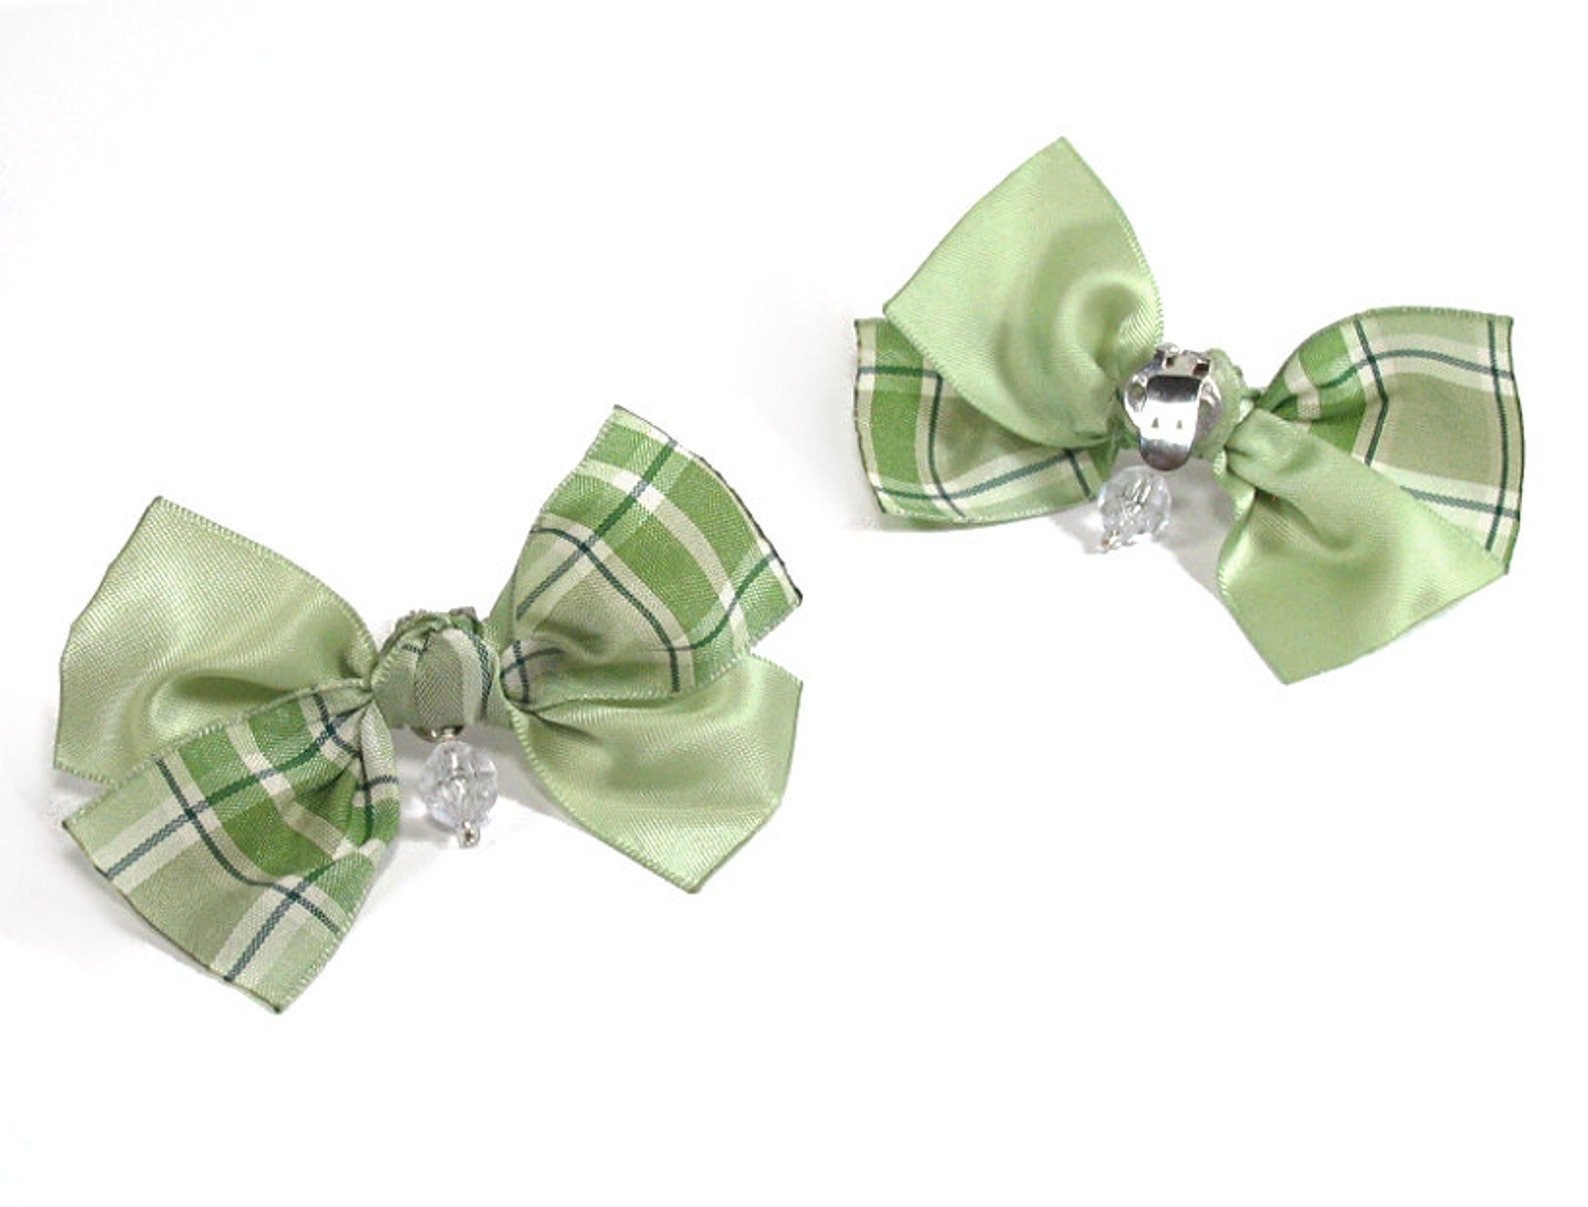 handmade green shoe clips, bow shoe clips, for high heels, sandles and ballet flats, wedding shoe clips, wedding bow shoe clips